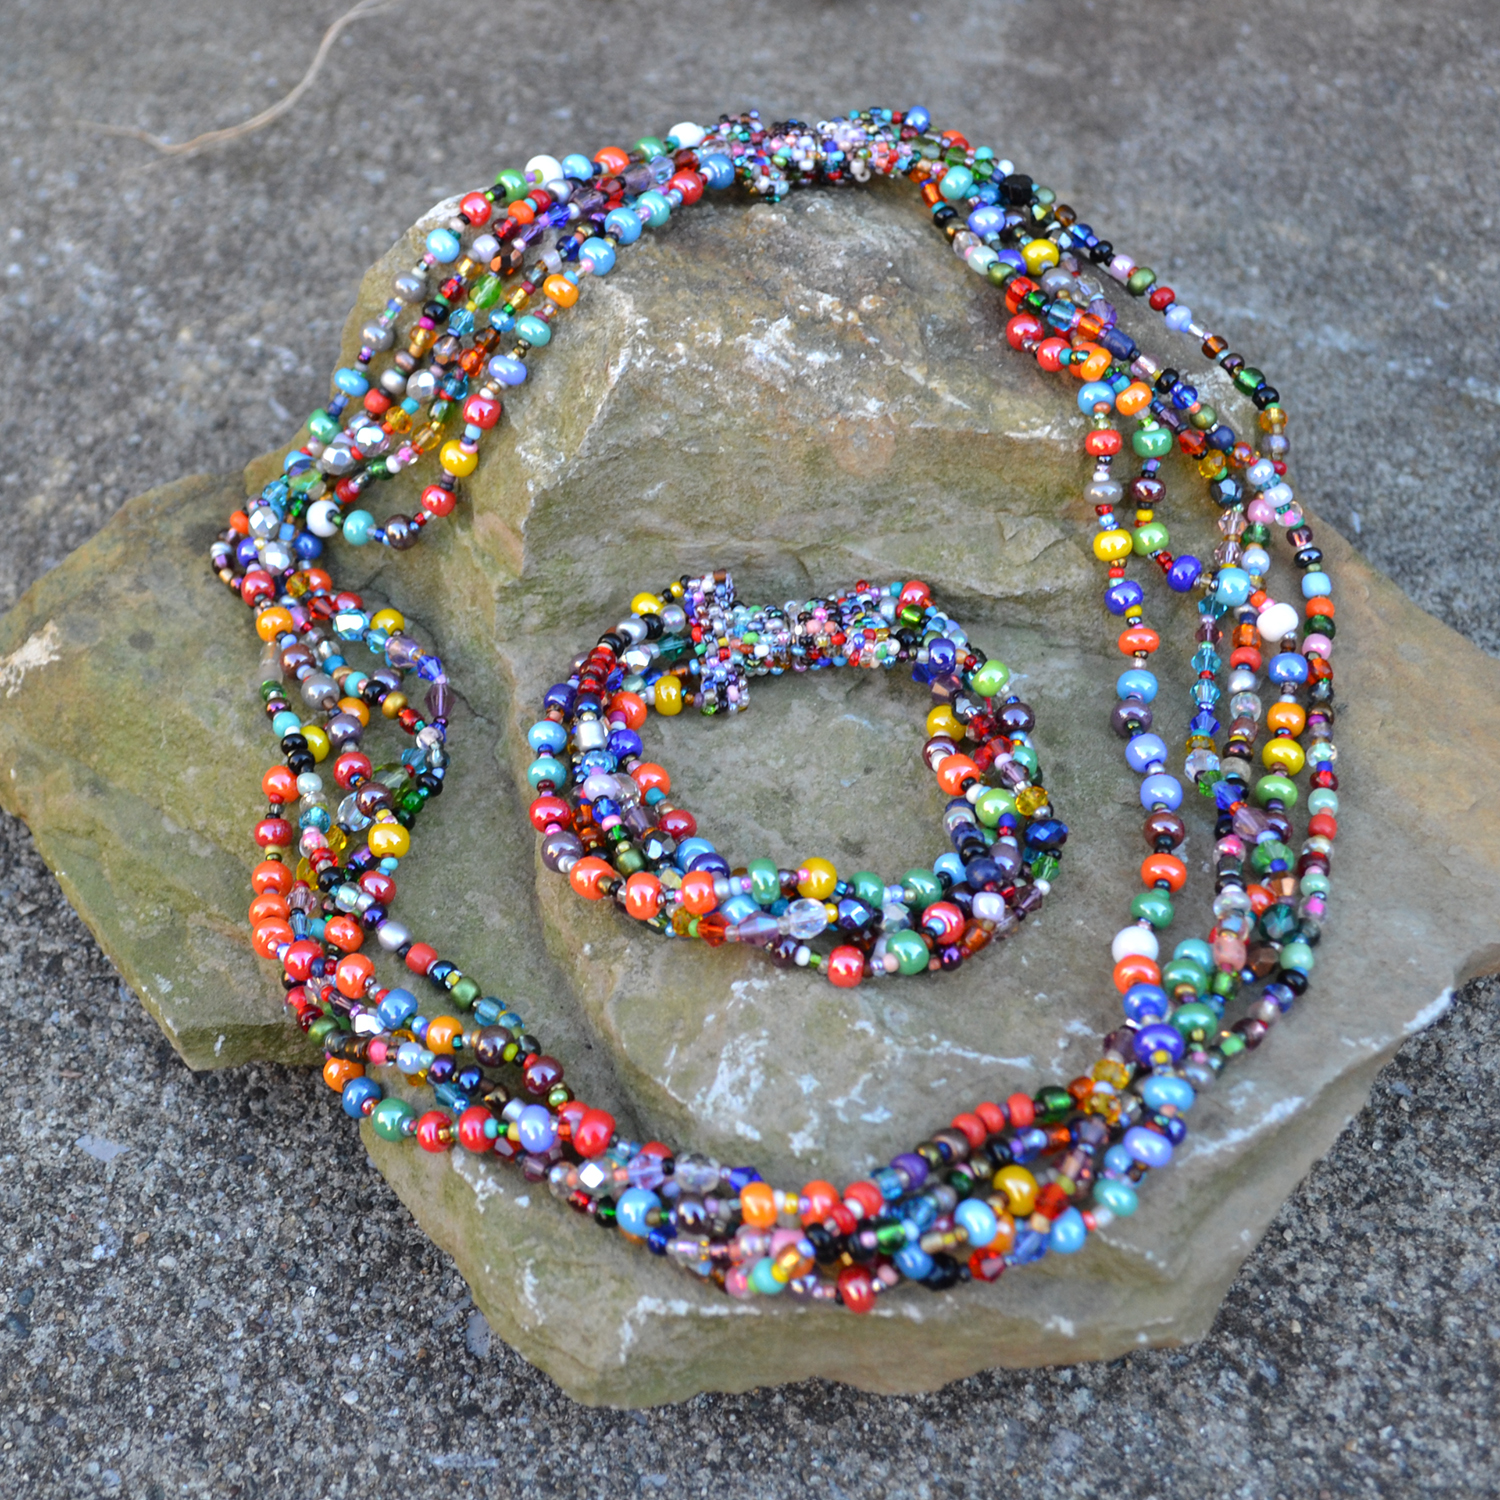 Gumball Necklace and Gumball Bracelet in multi